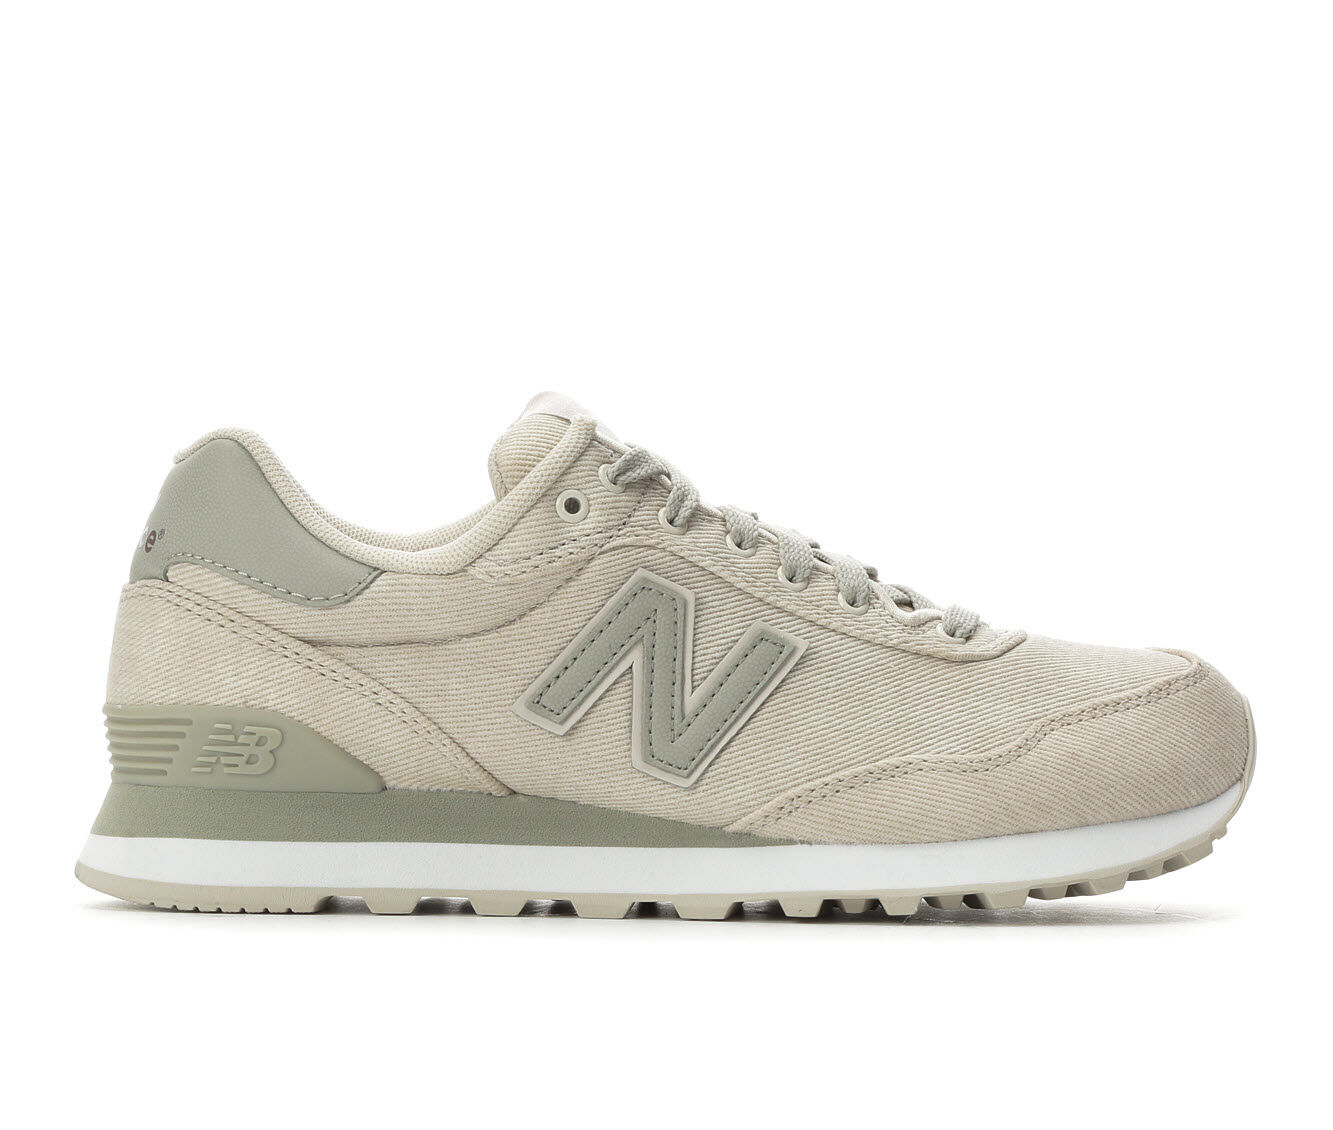 For Your Selection Women's New Balance WL515 Retro Sneakers Moonbeam/Grey